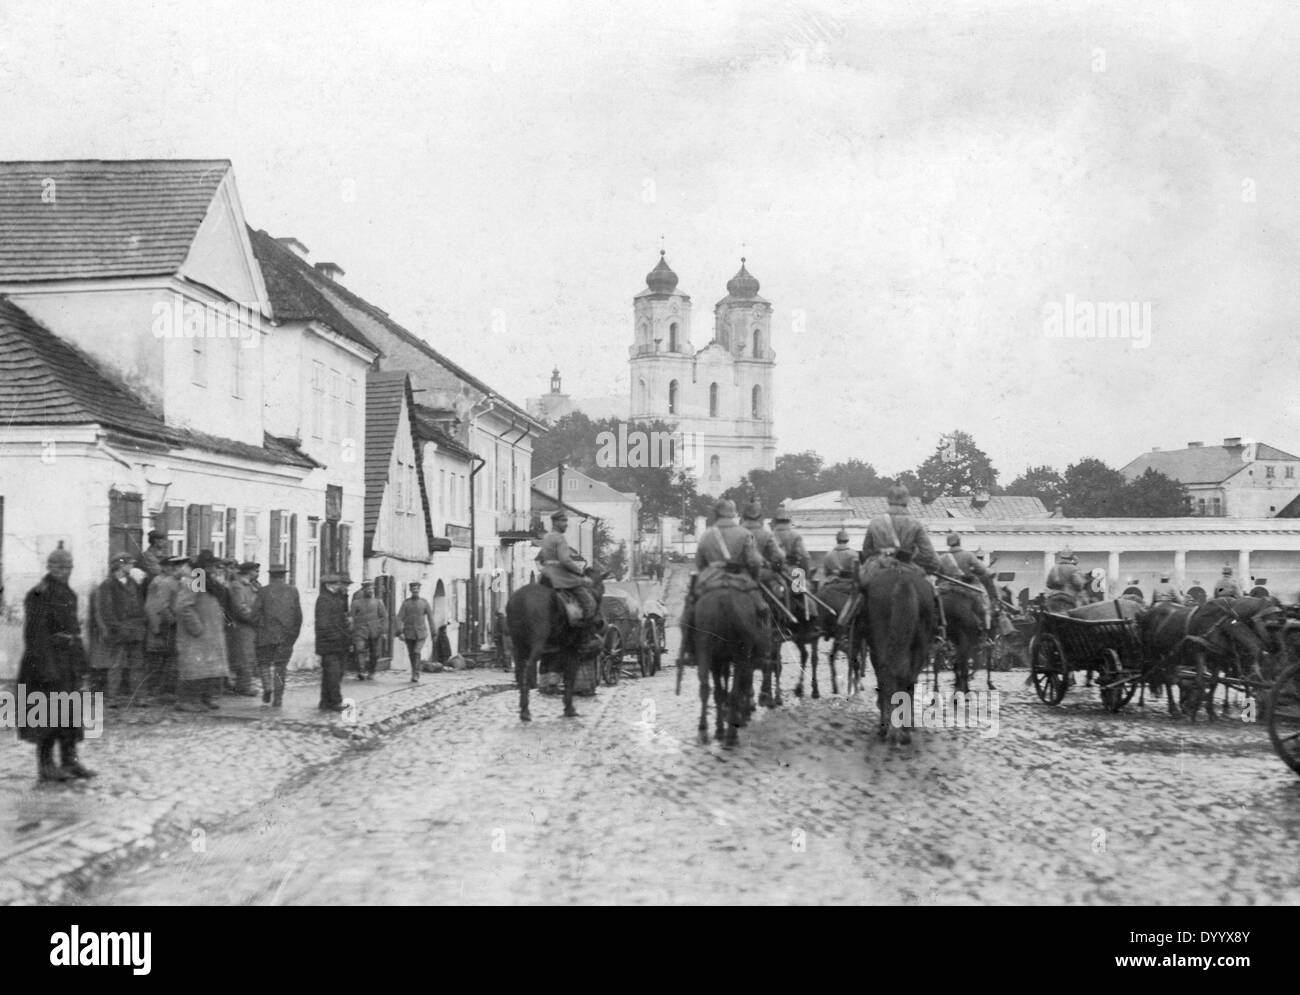 German troops in a Russian border town, 1914 - Stock Image